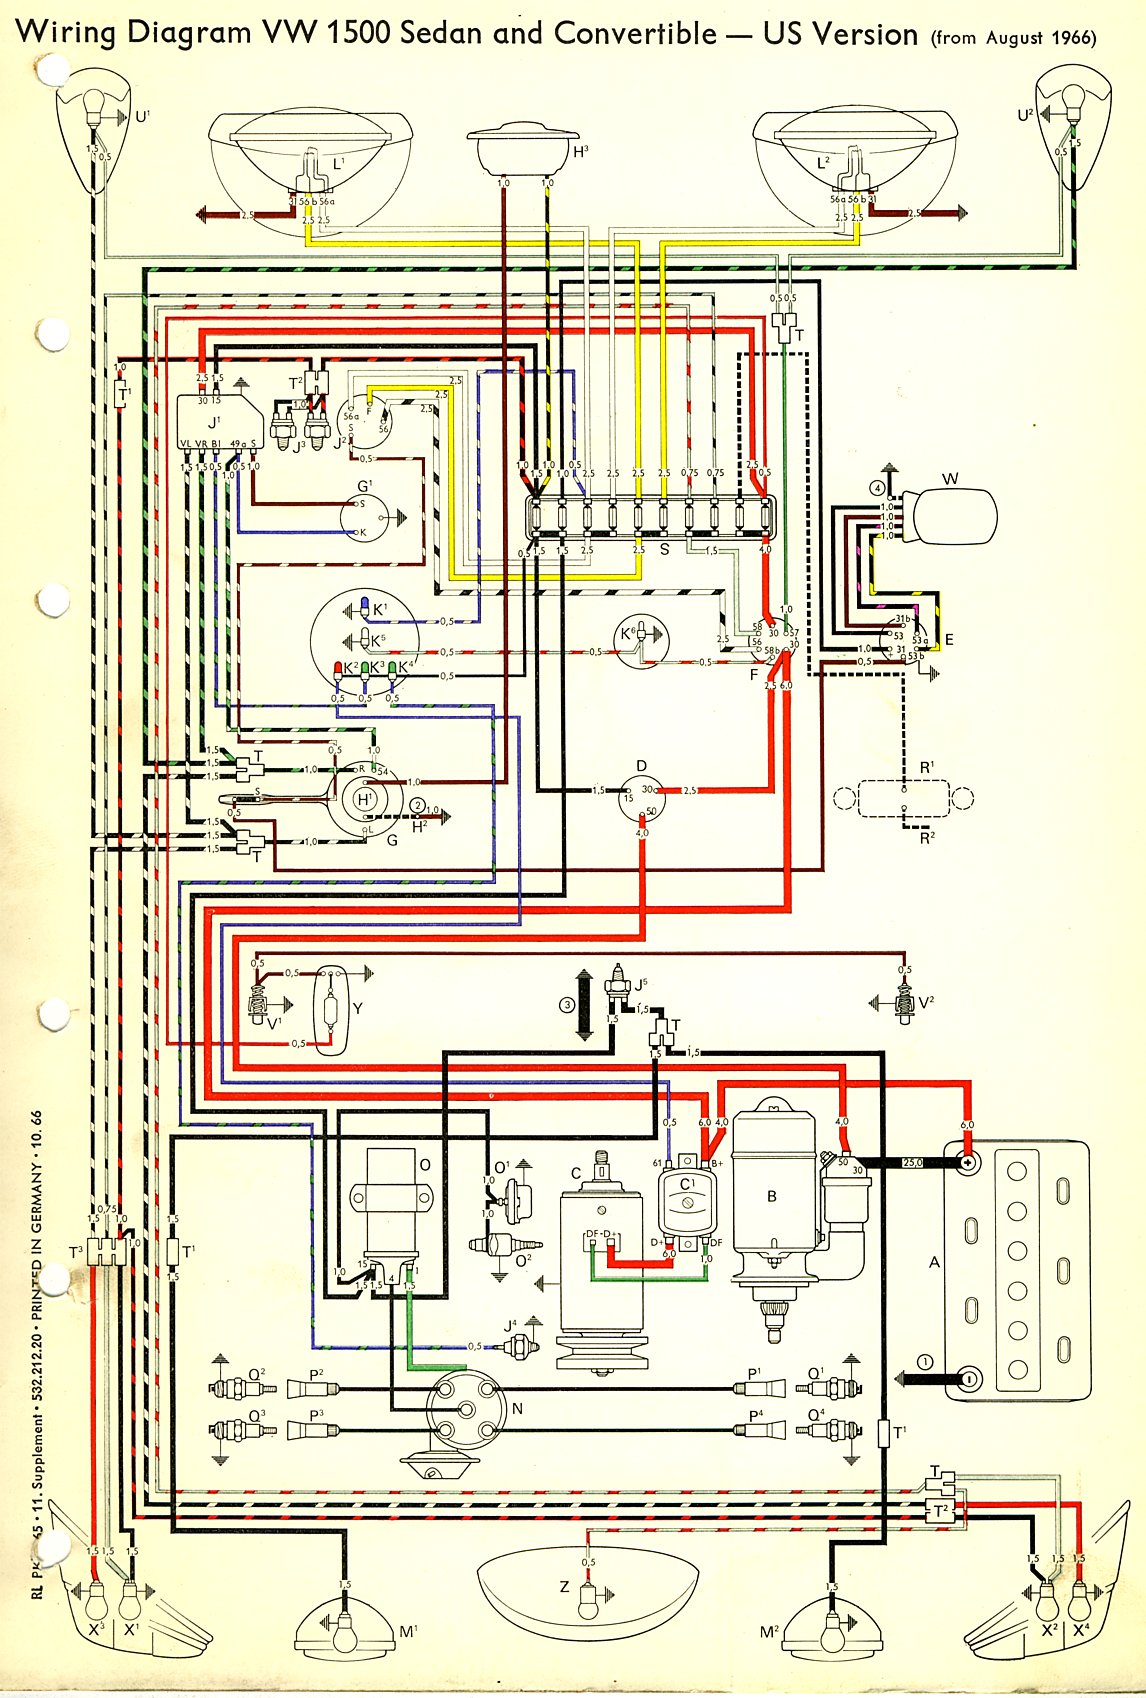 Type 1 Wiring Diagrams 1946 Chevy 5 Ton Truck Diagram